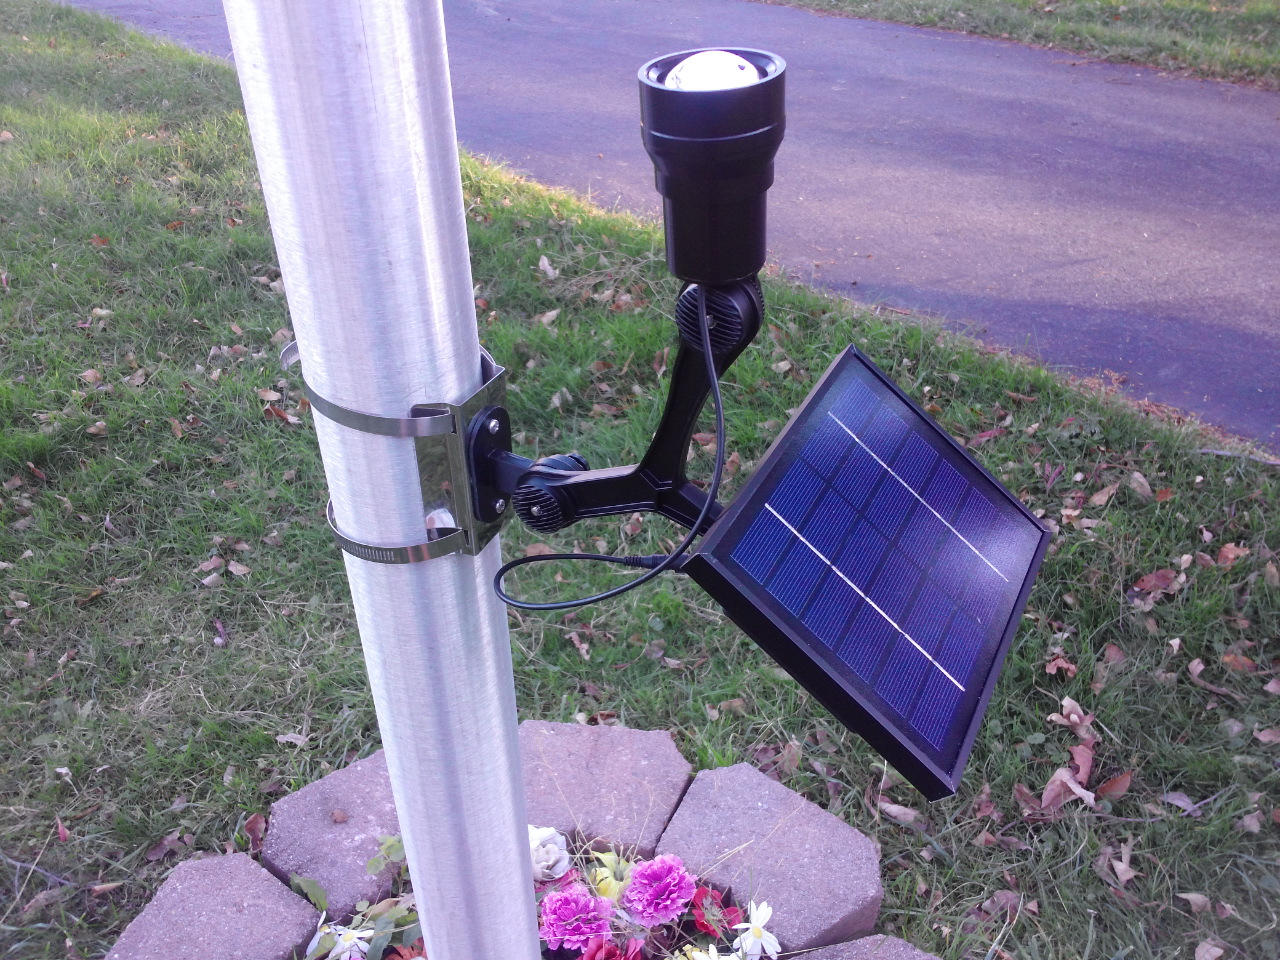 Commercial Solar Flagpole Light Cree Fixed Head